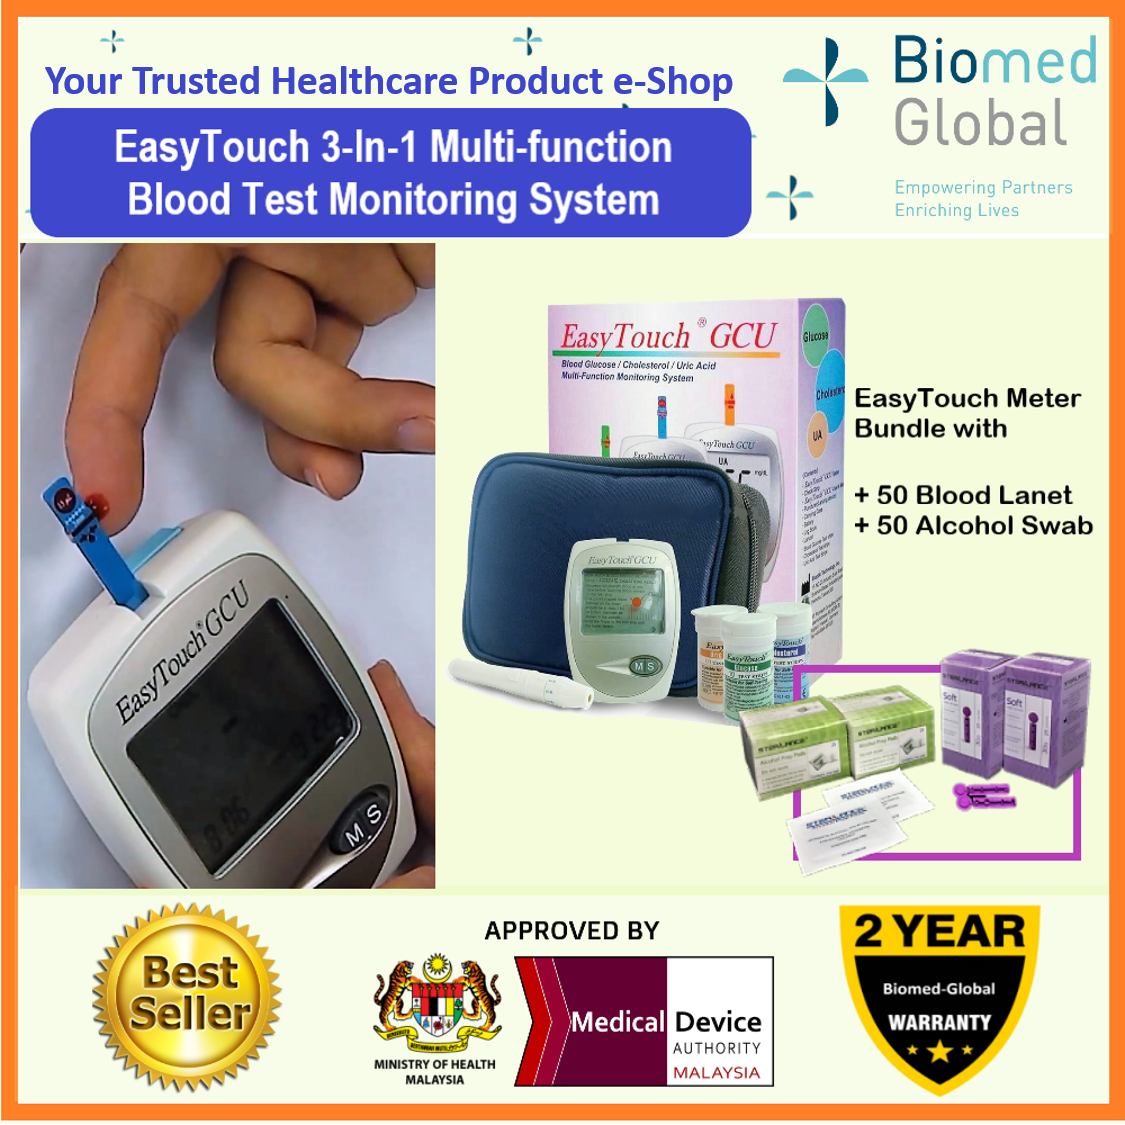 EasyTouch GCU 3-in-1 Blood Glucose, Cholesterol and Uric Acid Meter, FREE with Blood Lancet & Alcohol Swab (BUNDLE PACK)